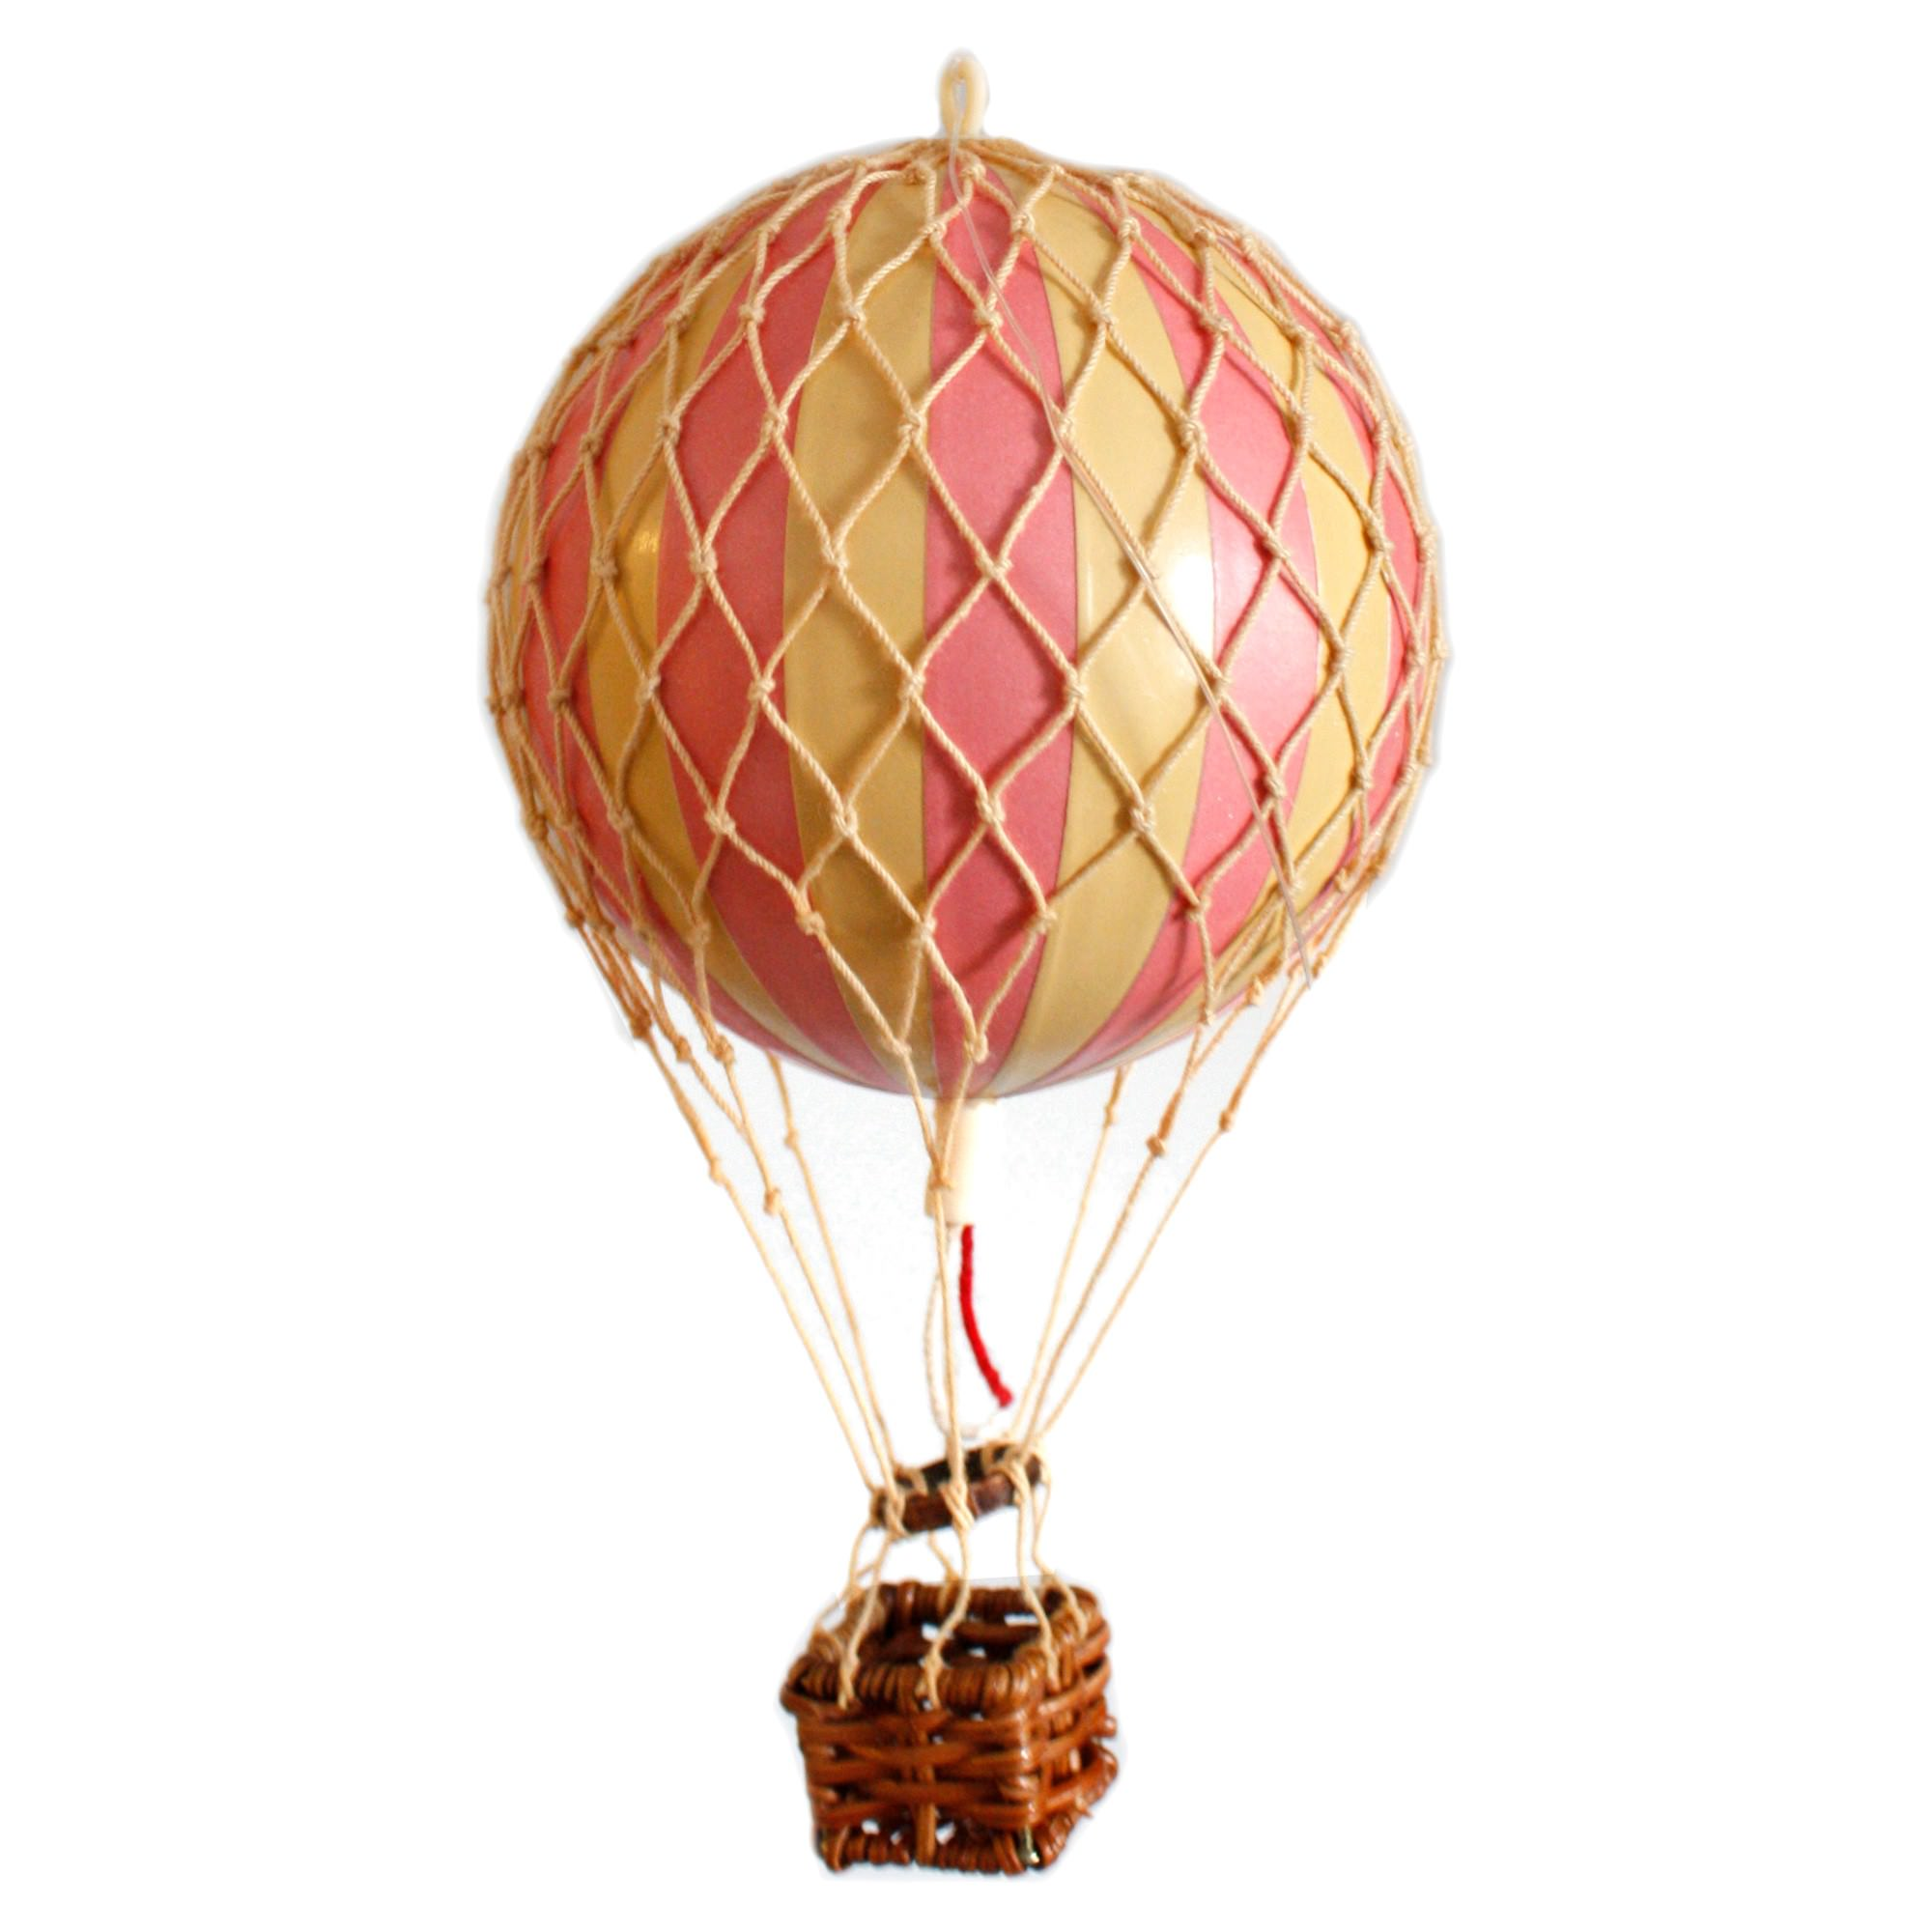 Floating The Skies Hot Air Balloon Model, Pink